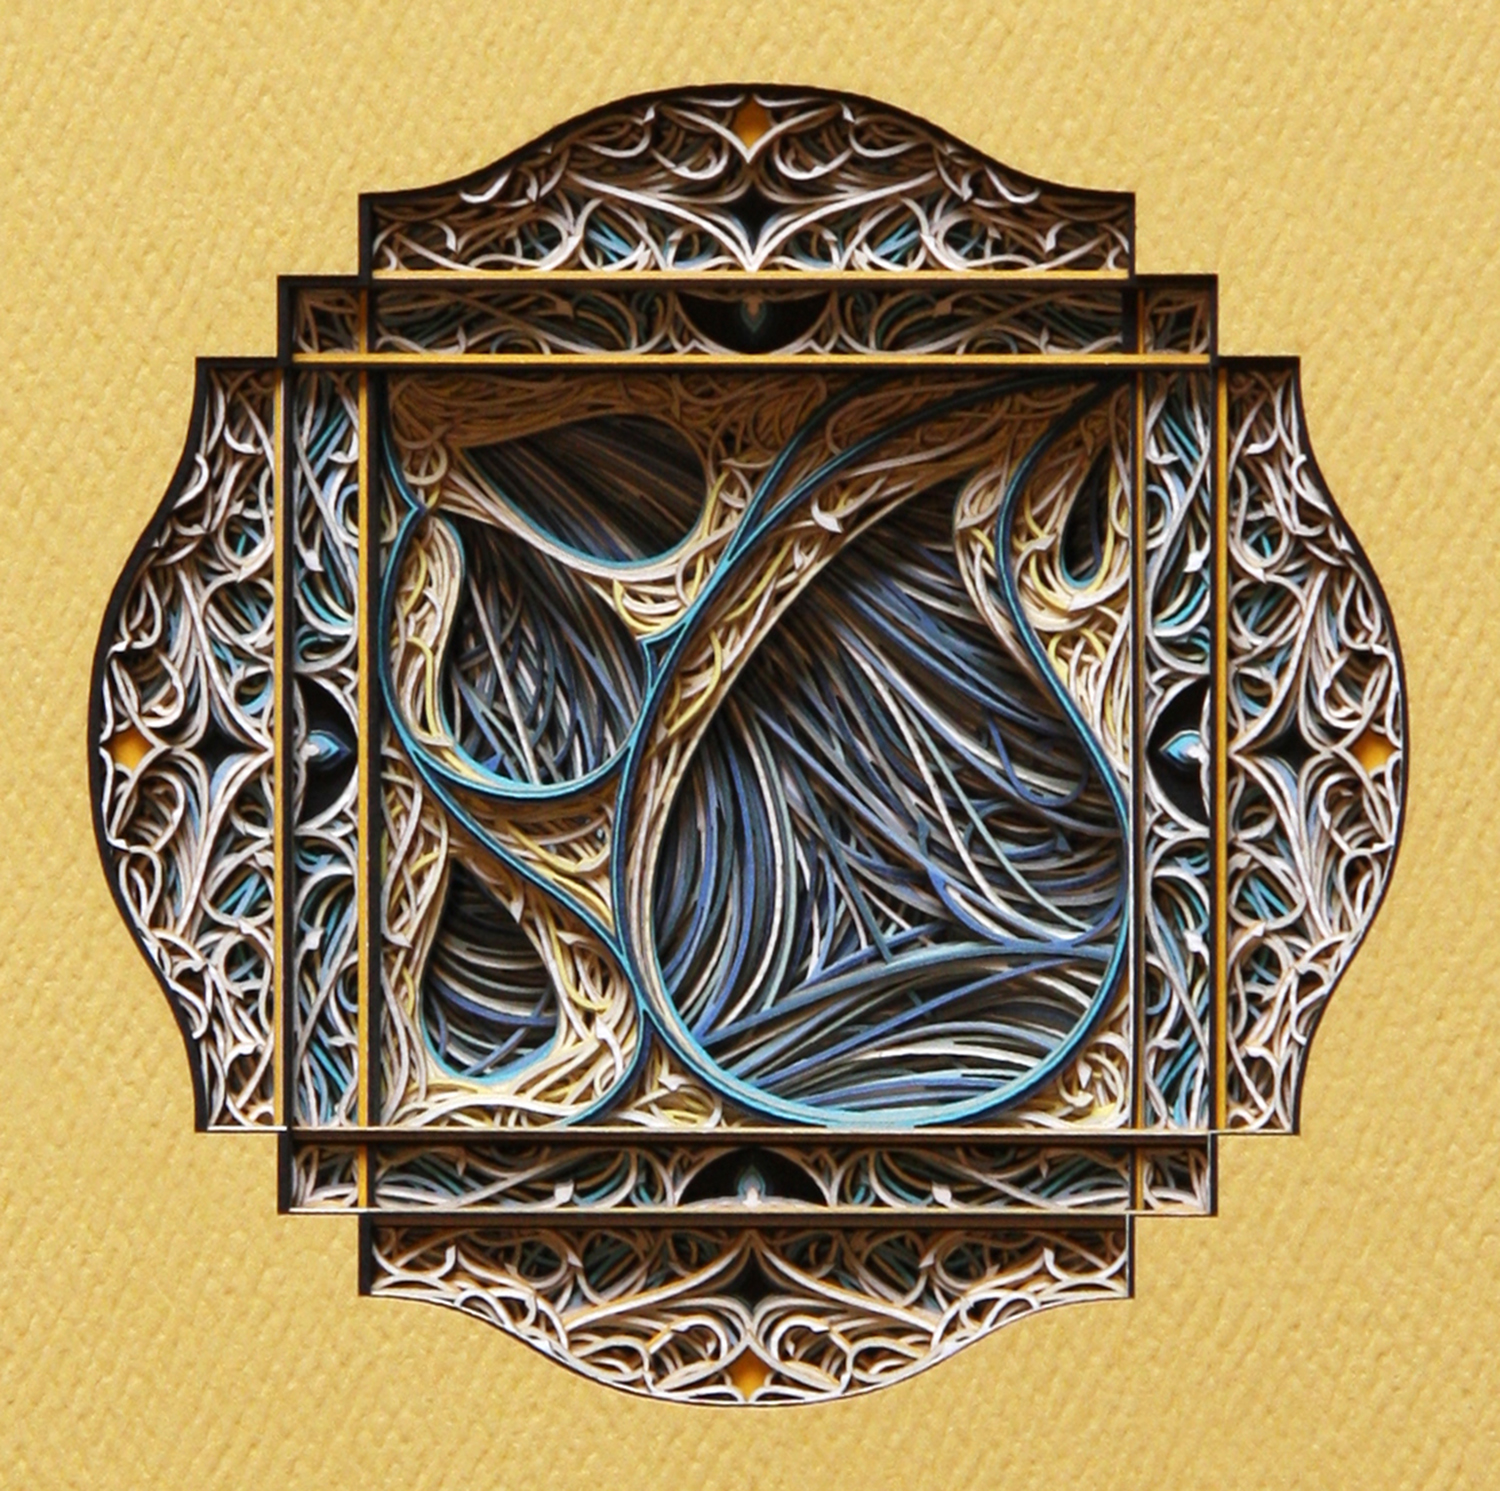 An ornate, window-style ornamentation made from layered paper